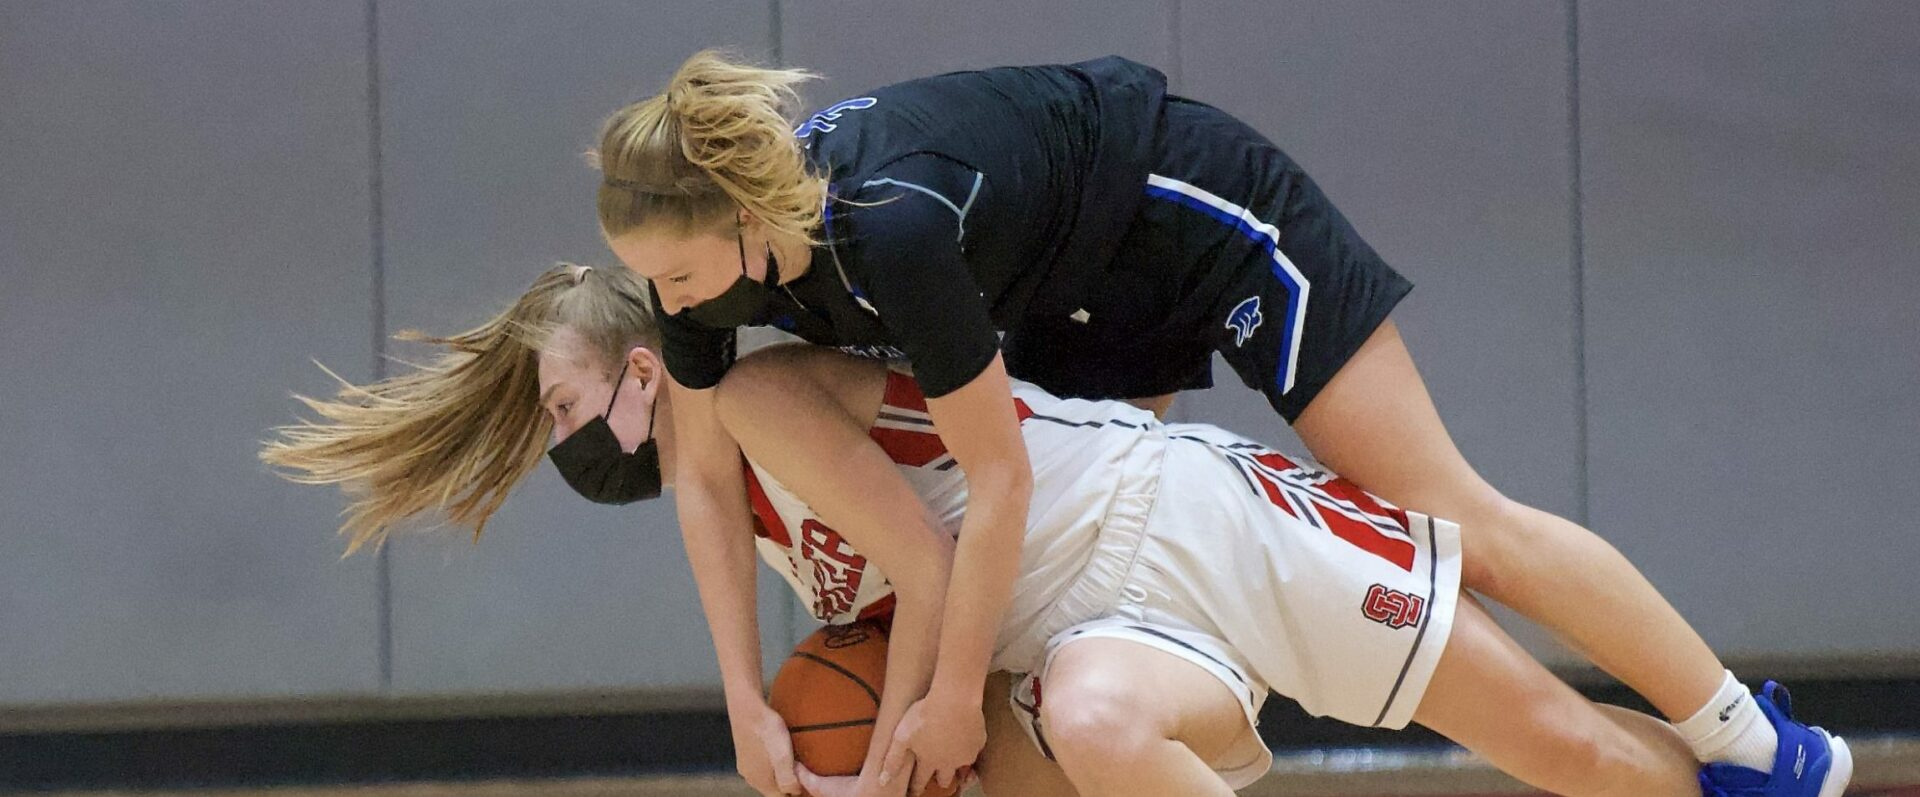 Montague girls basketball team gets even with Spring Lake, remains unbeaten, with a 60-38 victory in D2 district semifinals